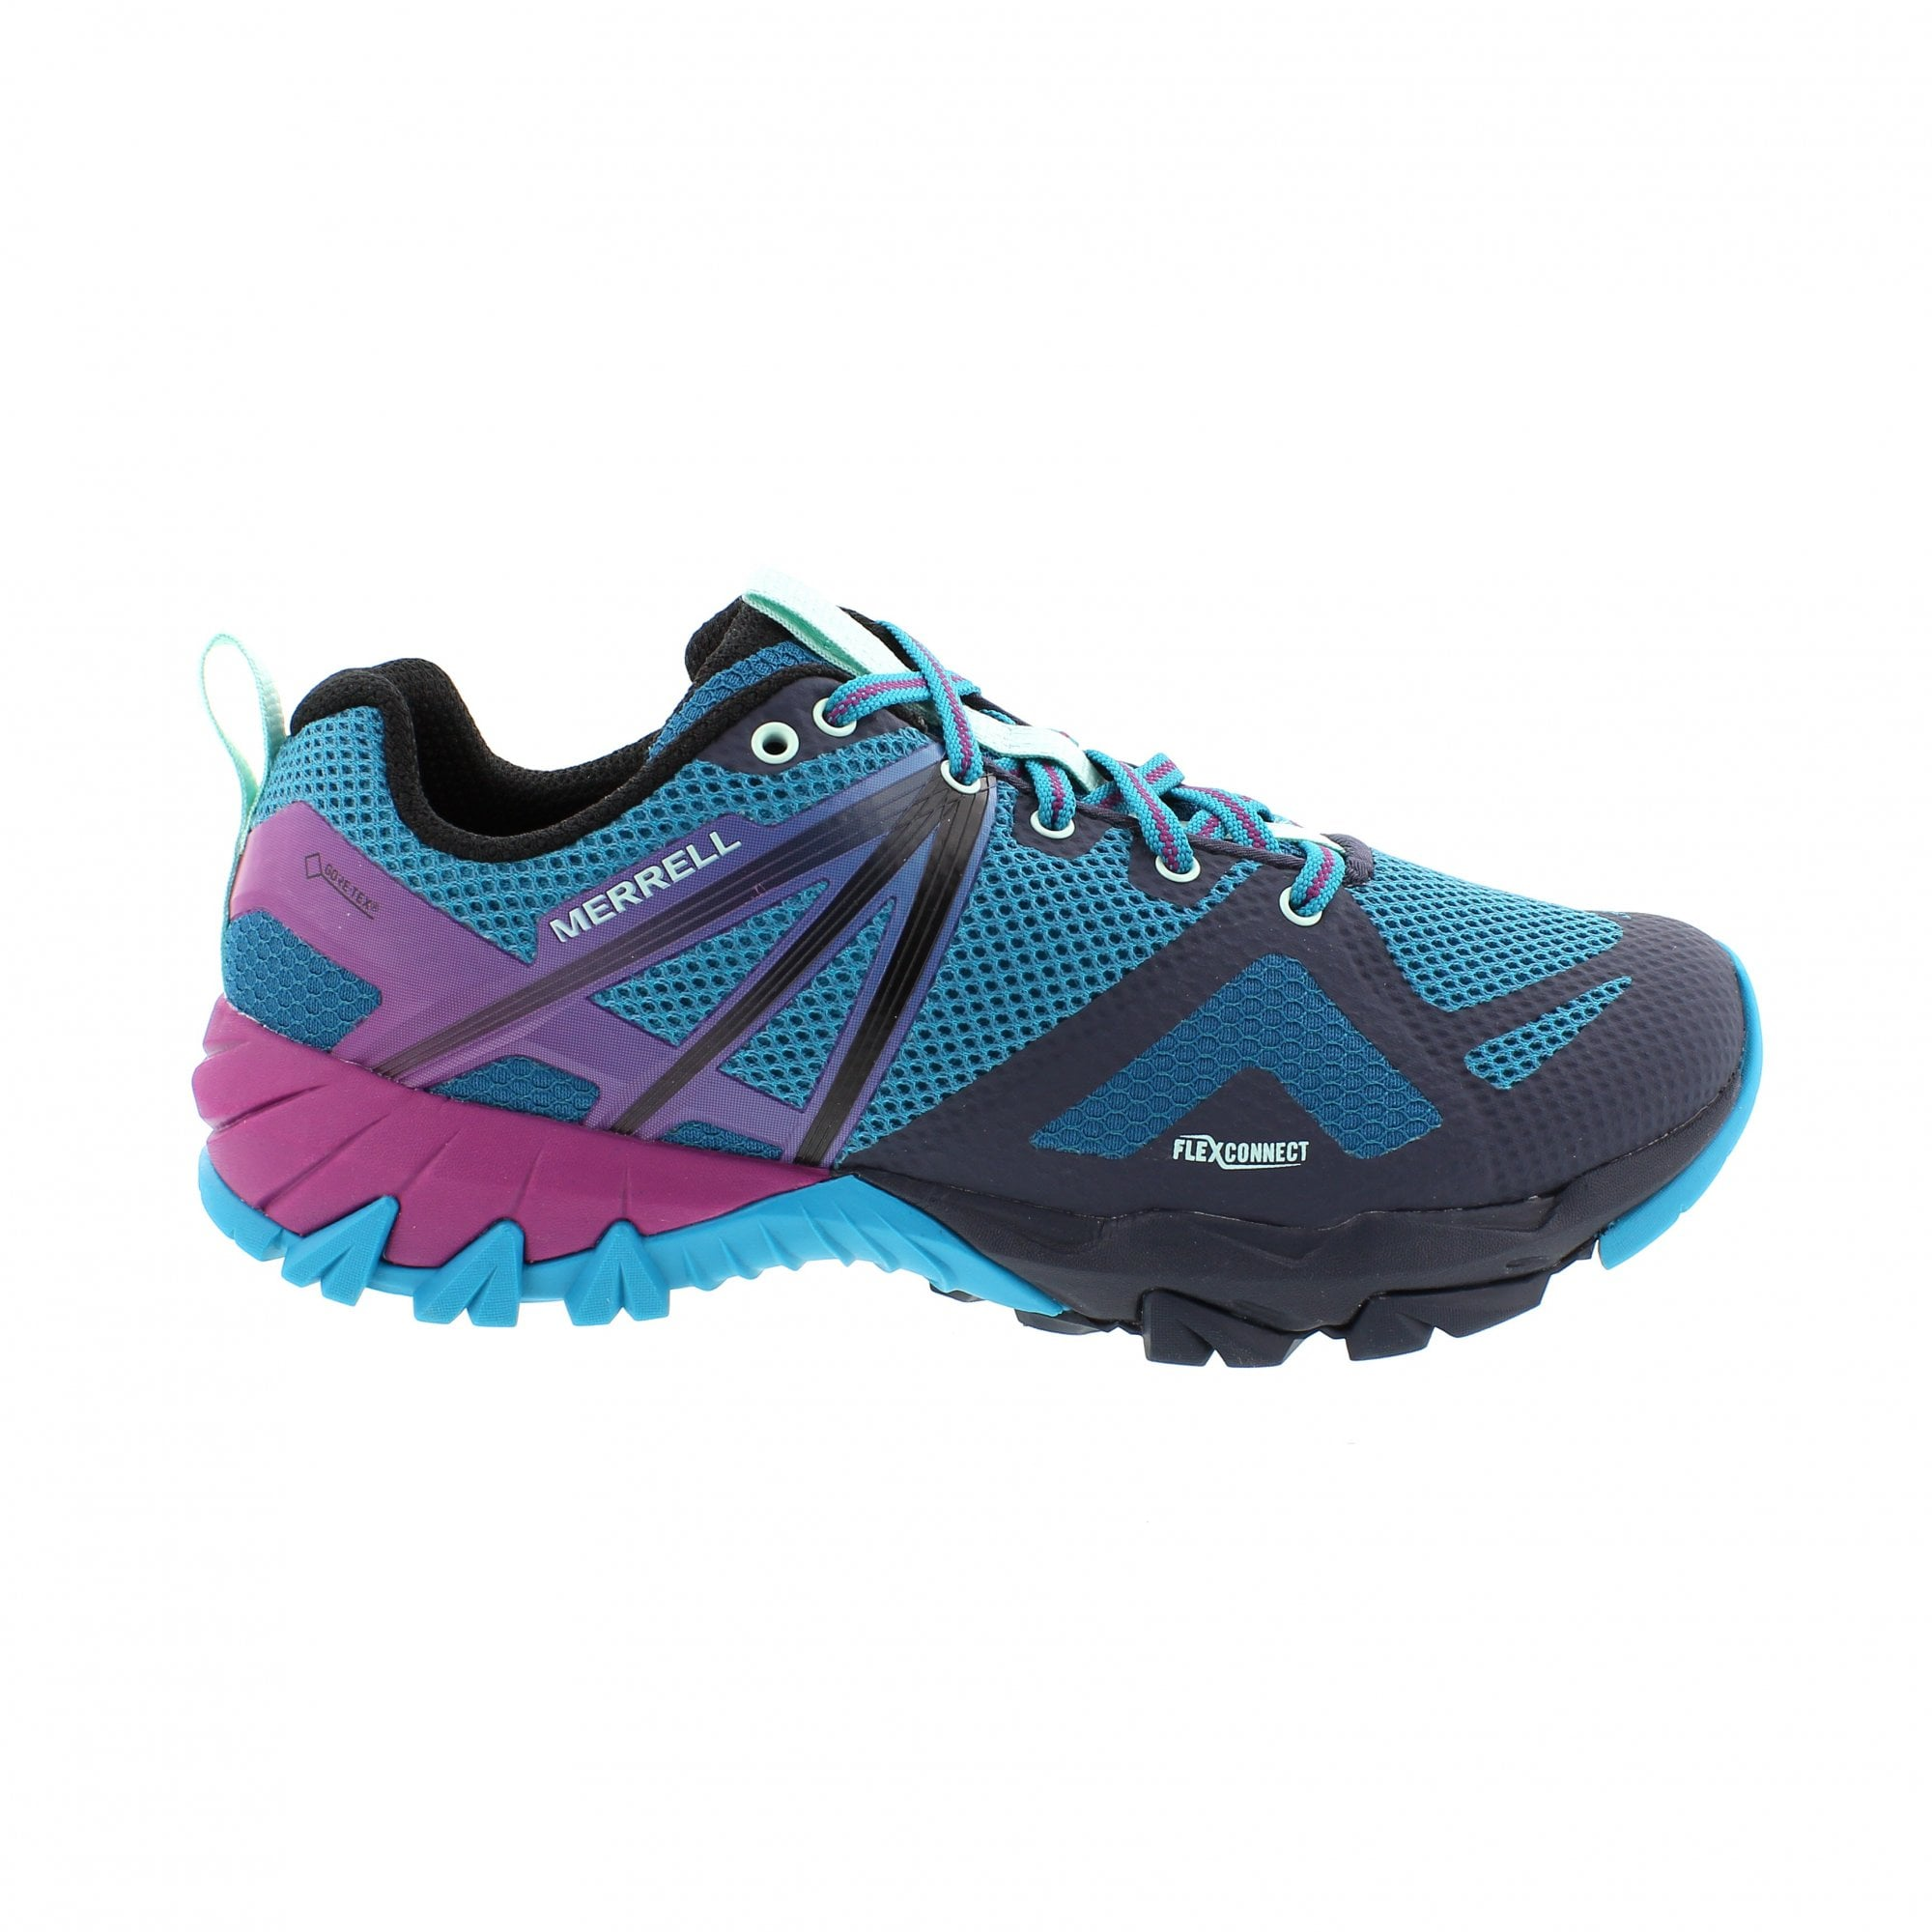 d8faa1fd4e9 Merrell Mqm Flex Gore-Tex J19648 Womens Trainers | Rogerson Shoes